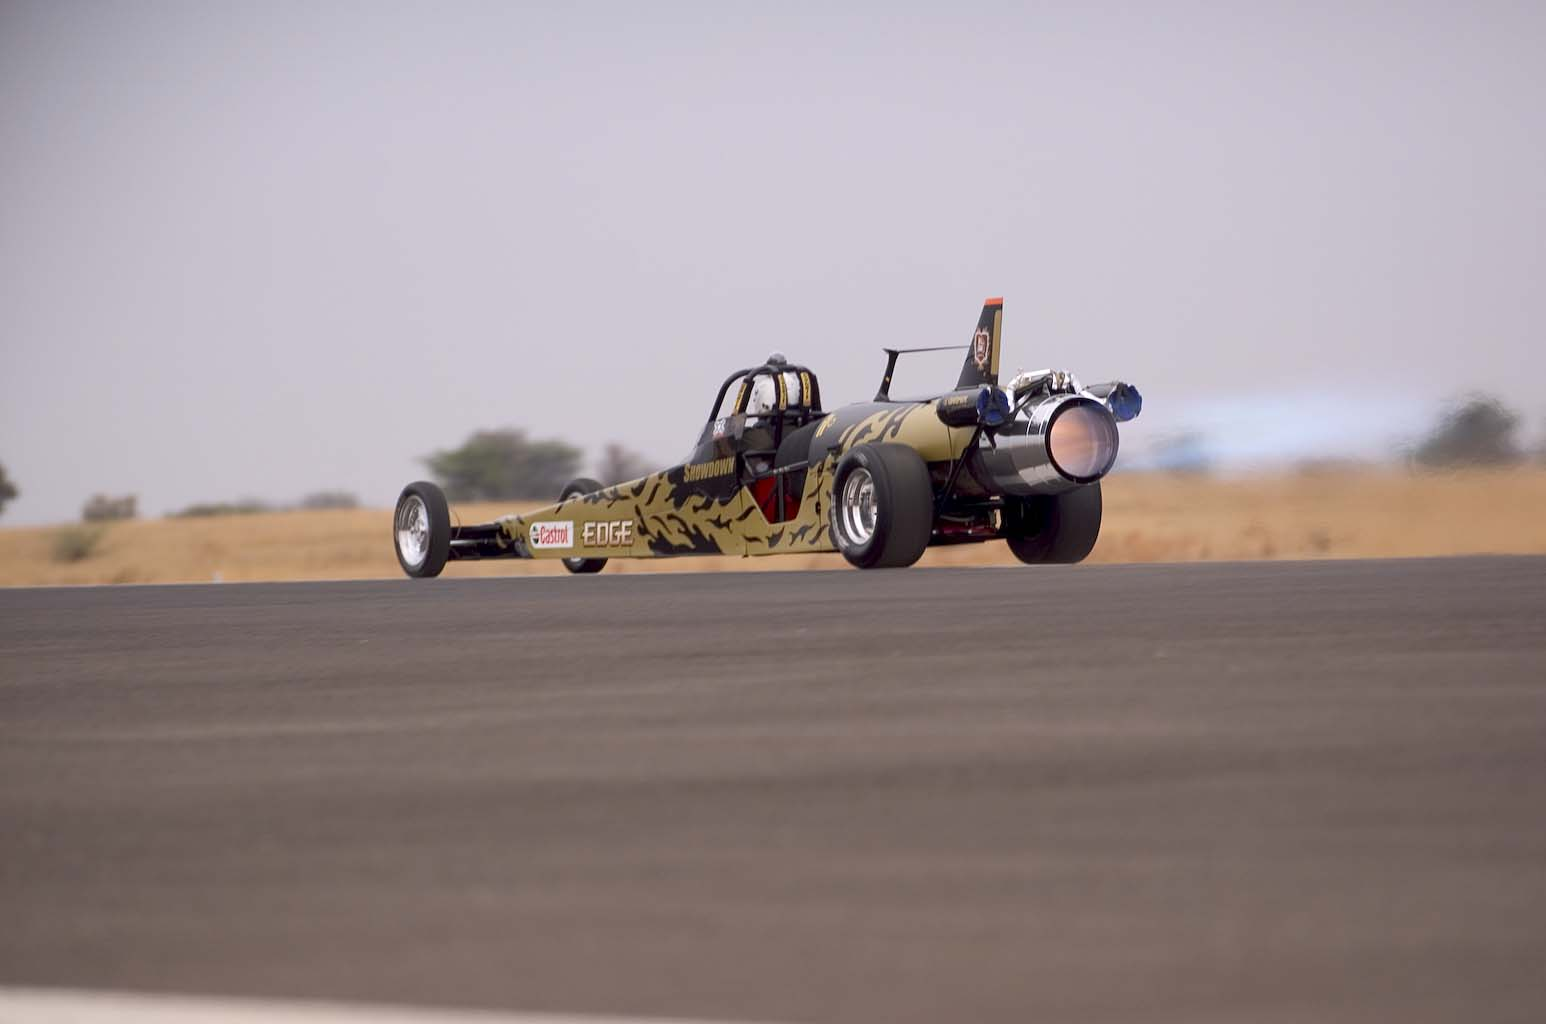 1986 Dragster Jet Powered Jet Dragster